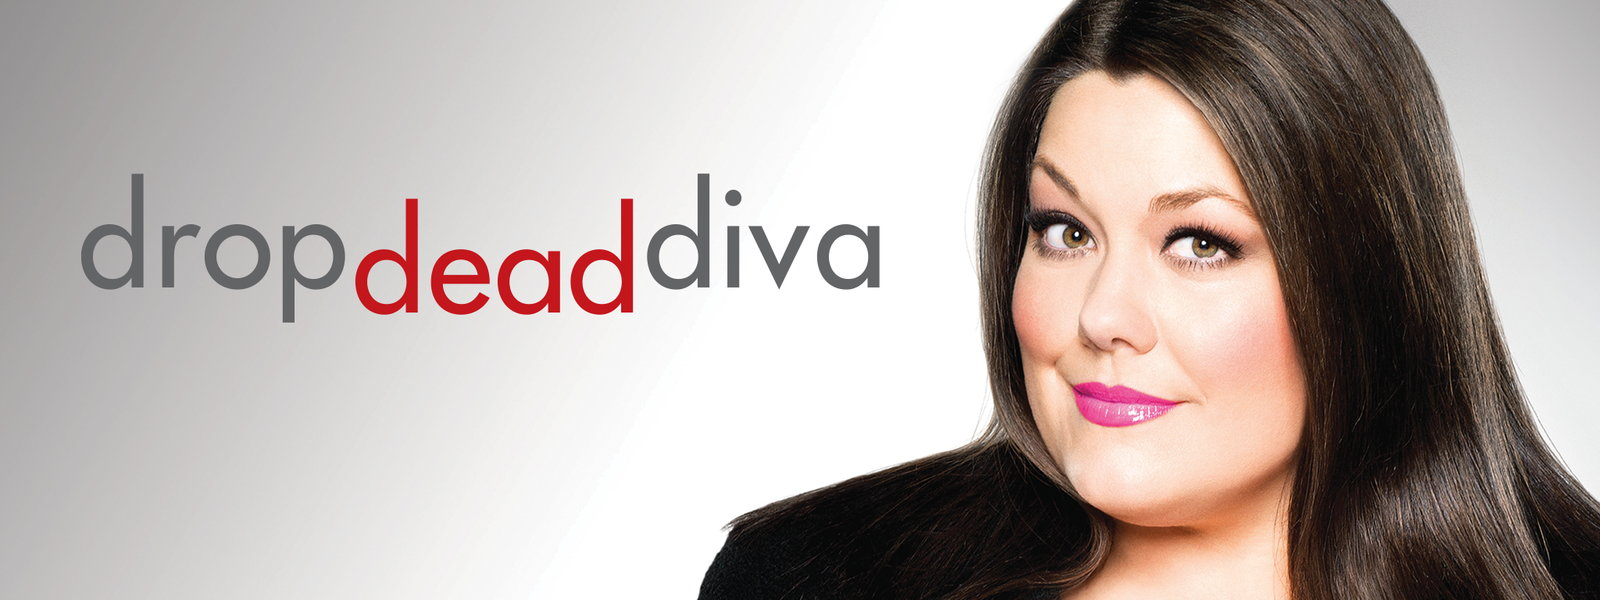 Drop dead diva streaming ita idea di casa - Drop dead diva ita streaming ...